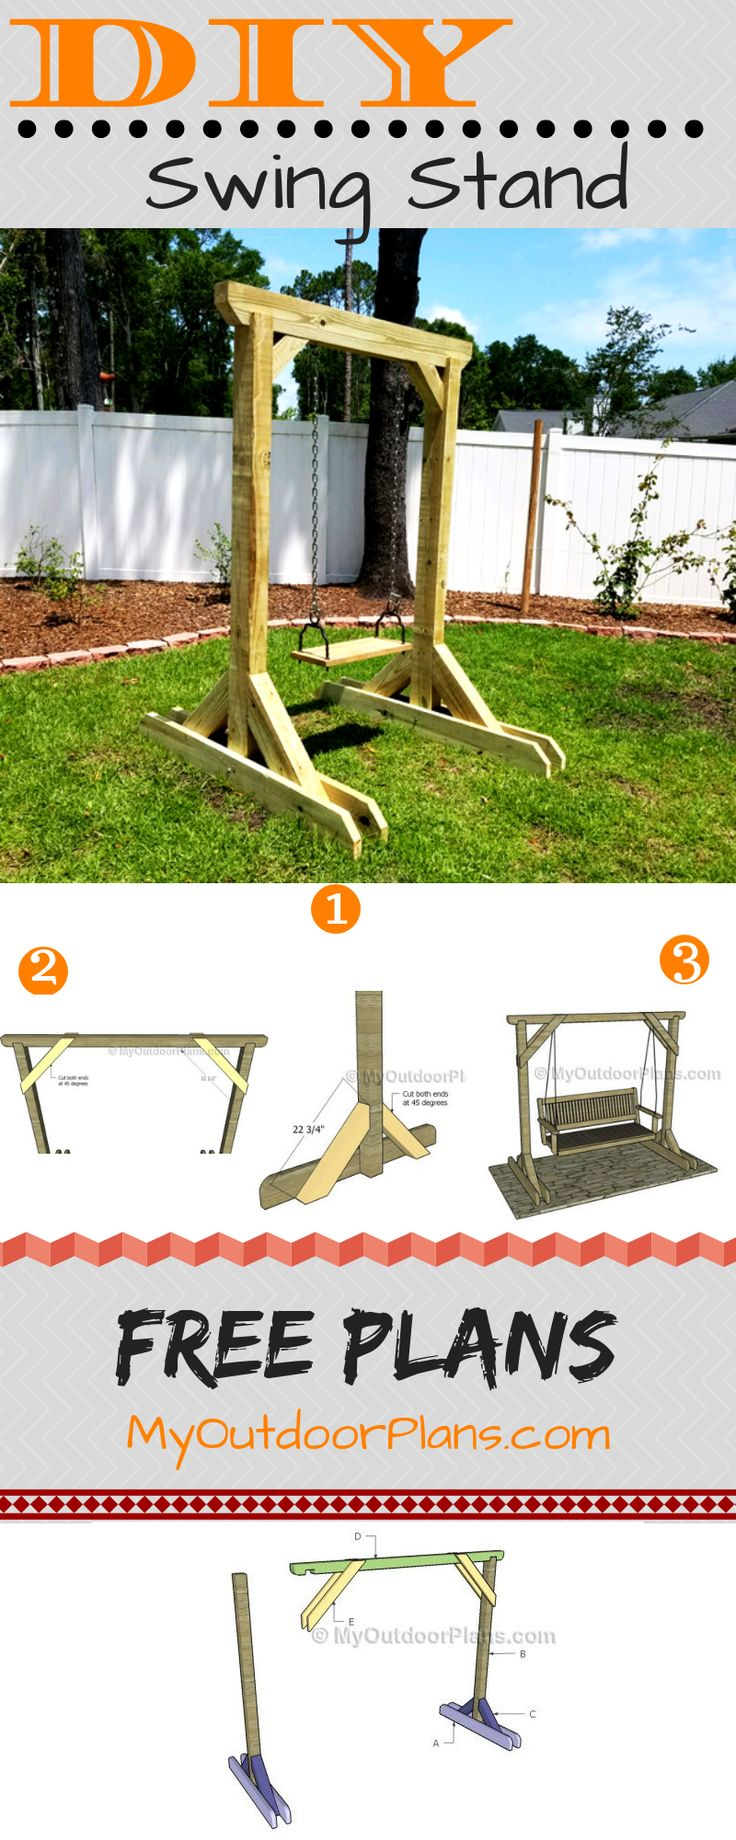 Free and easy to follow plans on how to build a porch